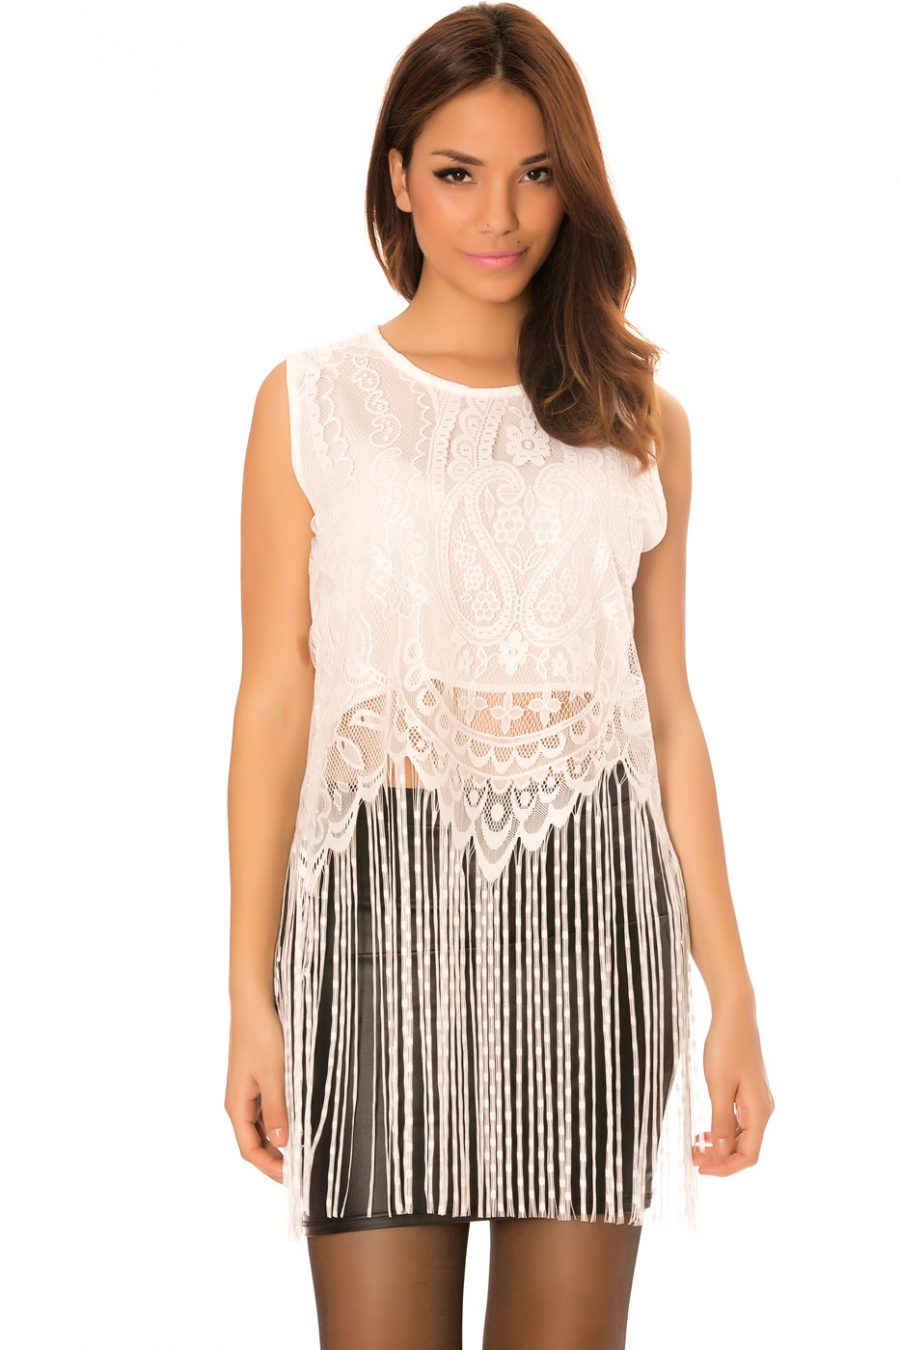 White lace top with long fringes. C-267